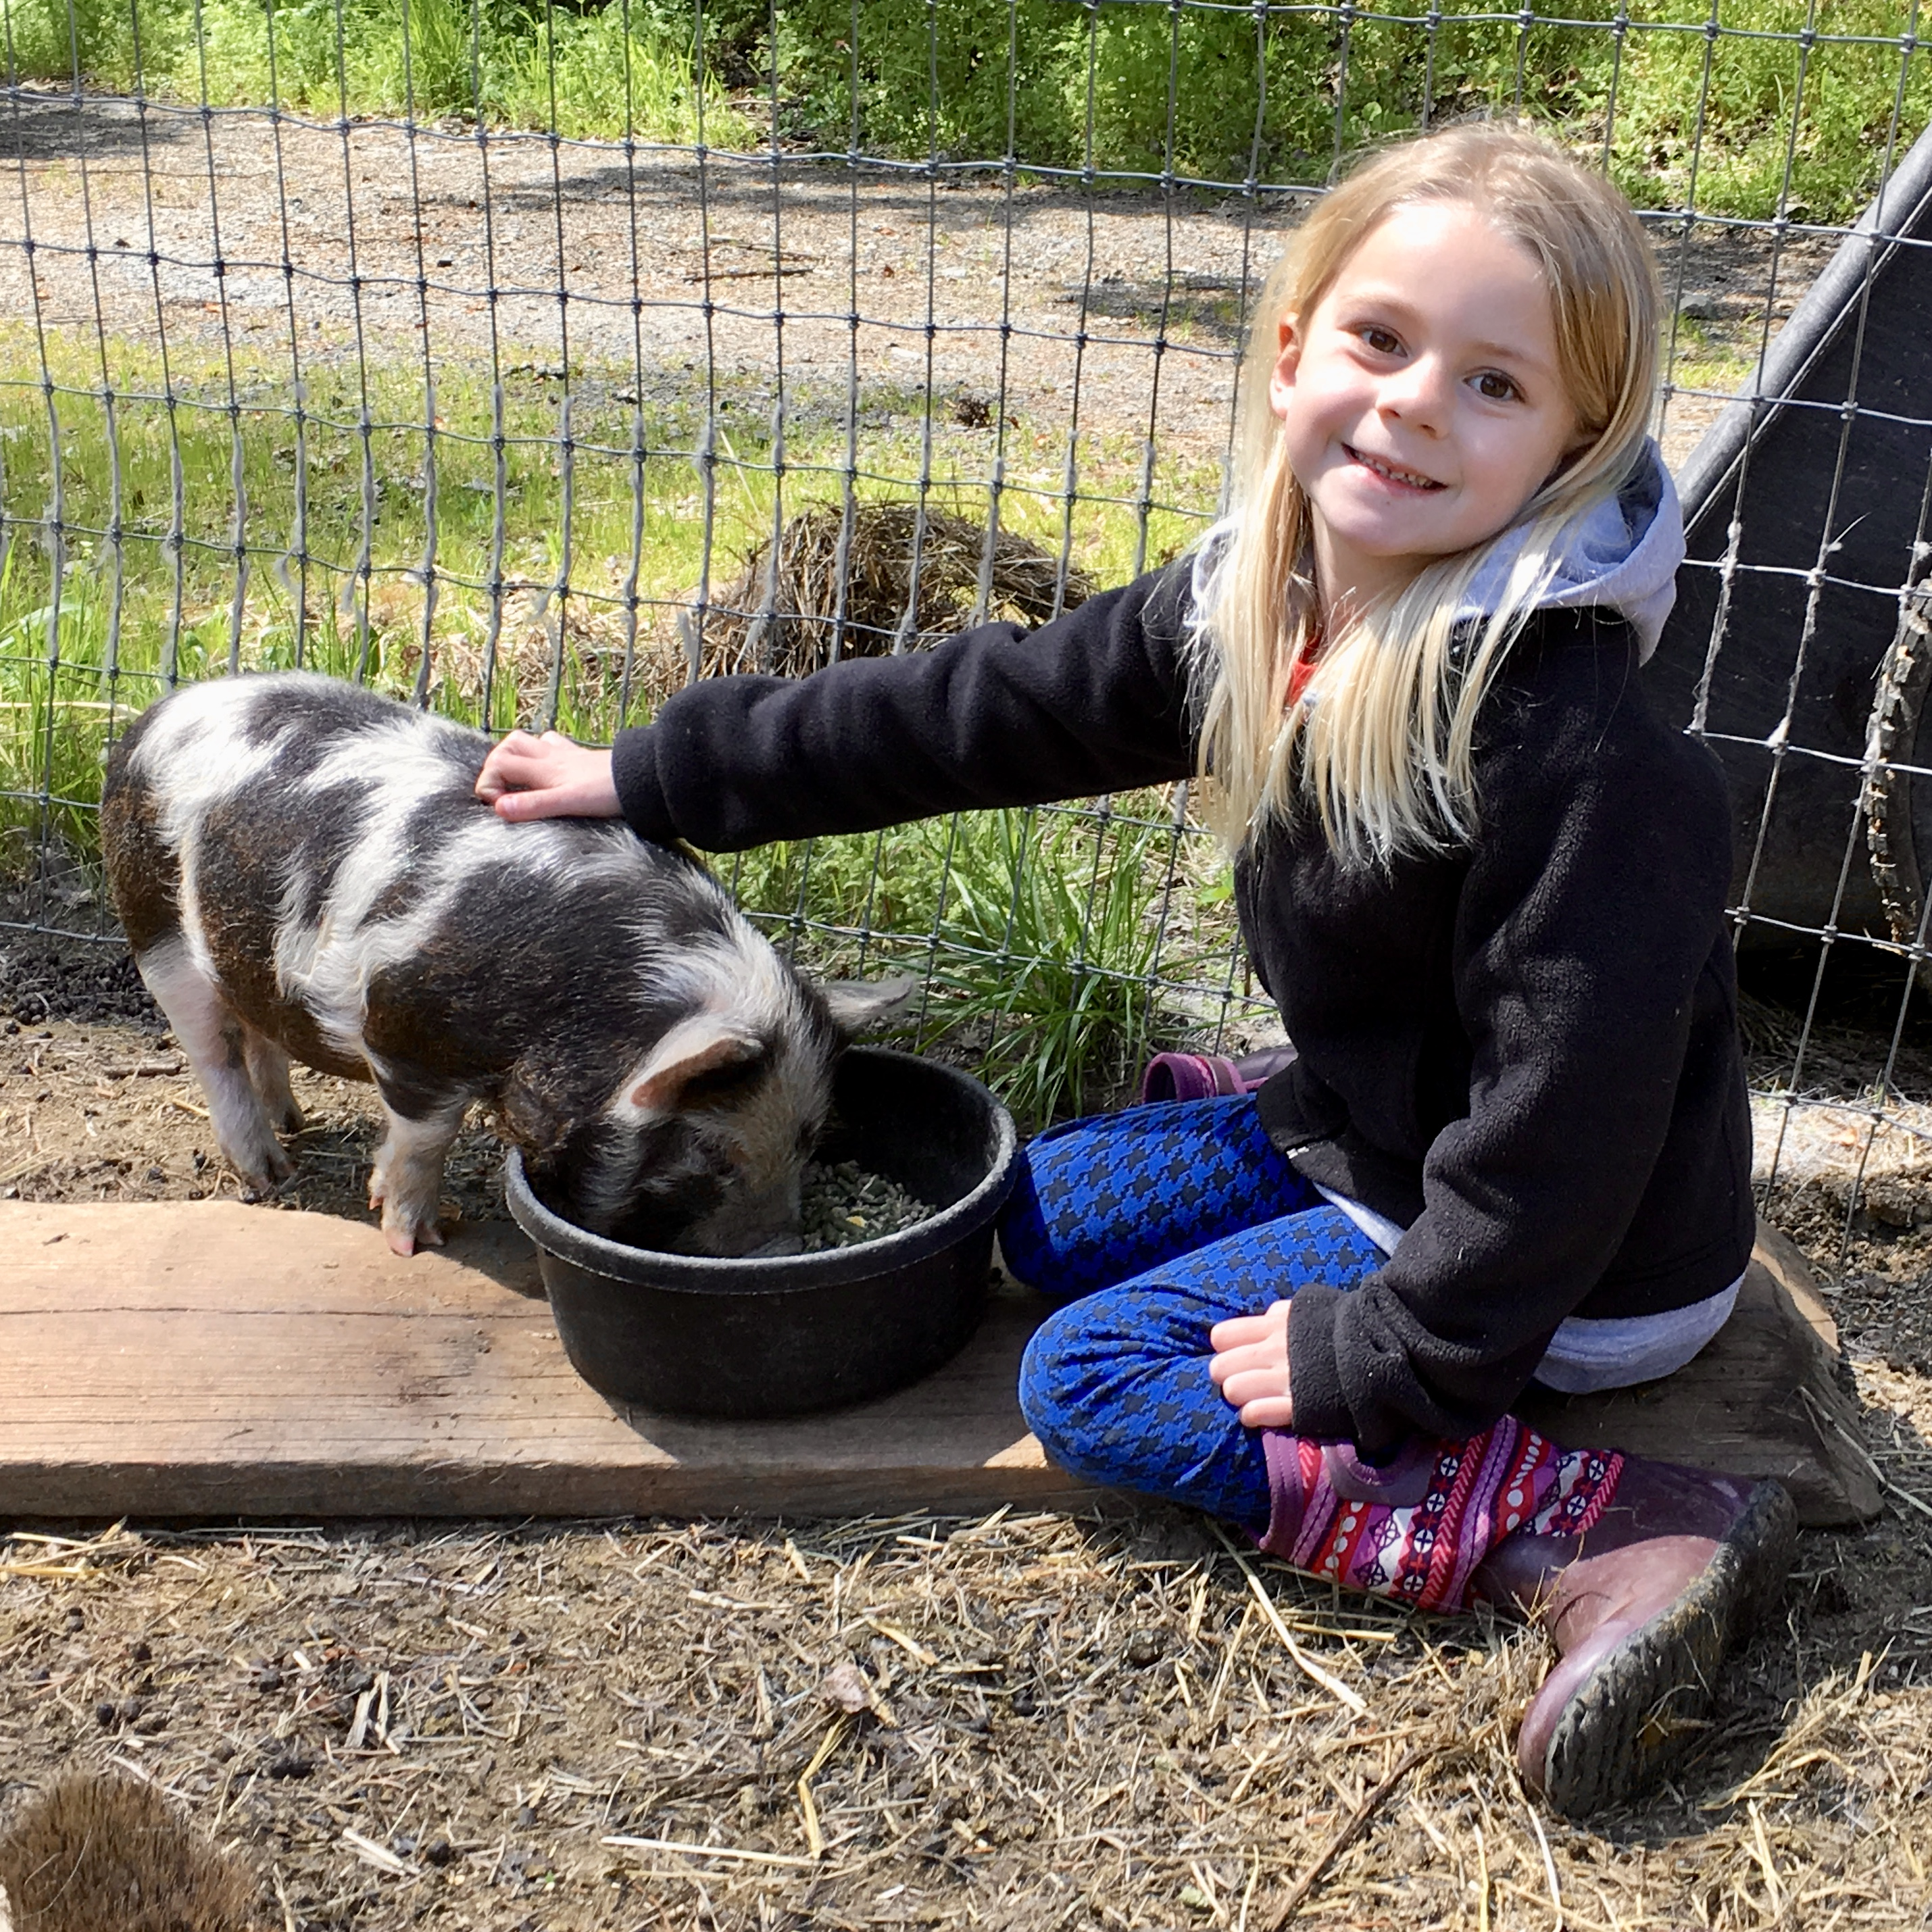 Pigs make wonderful hobby farm companions